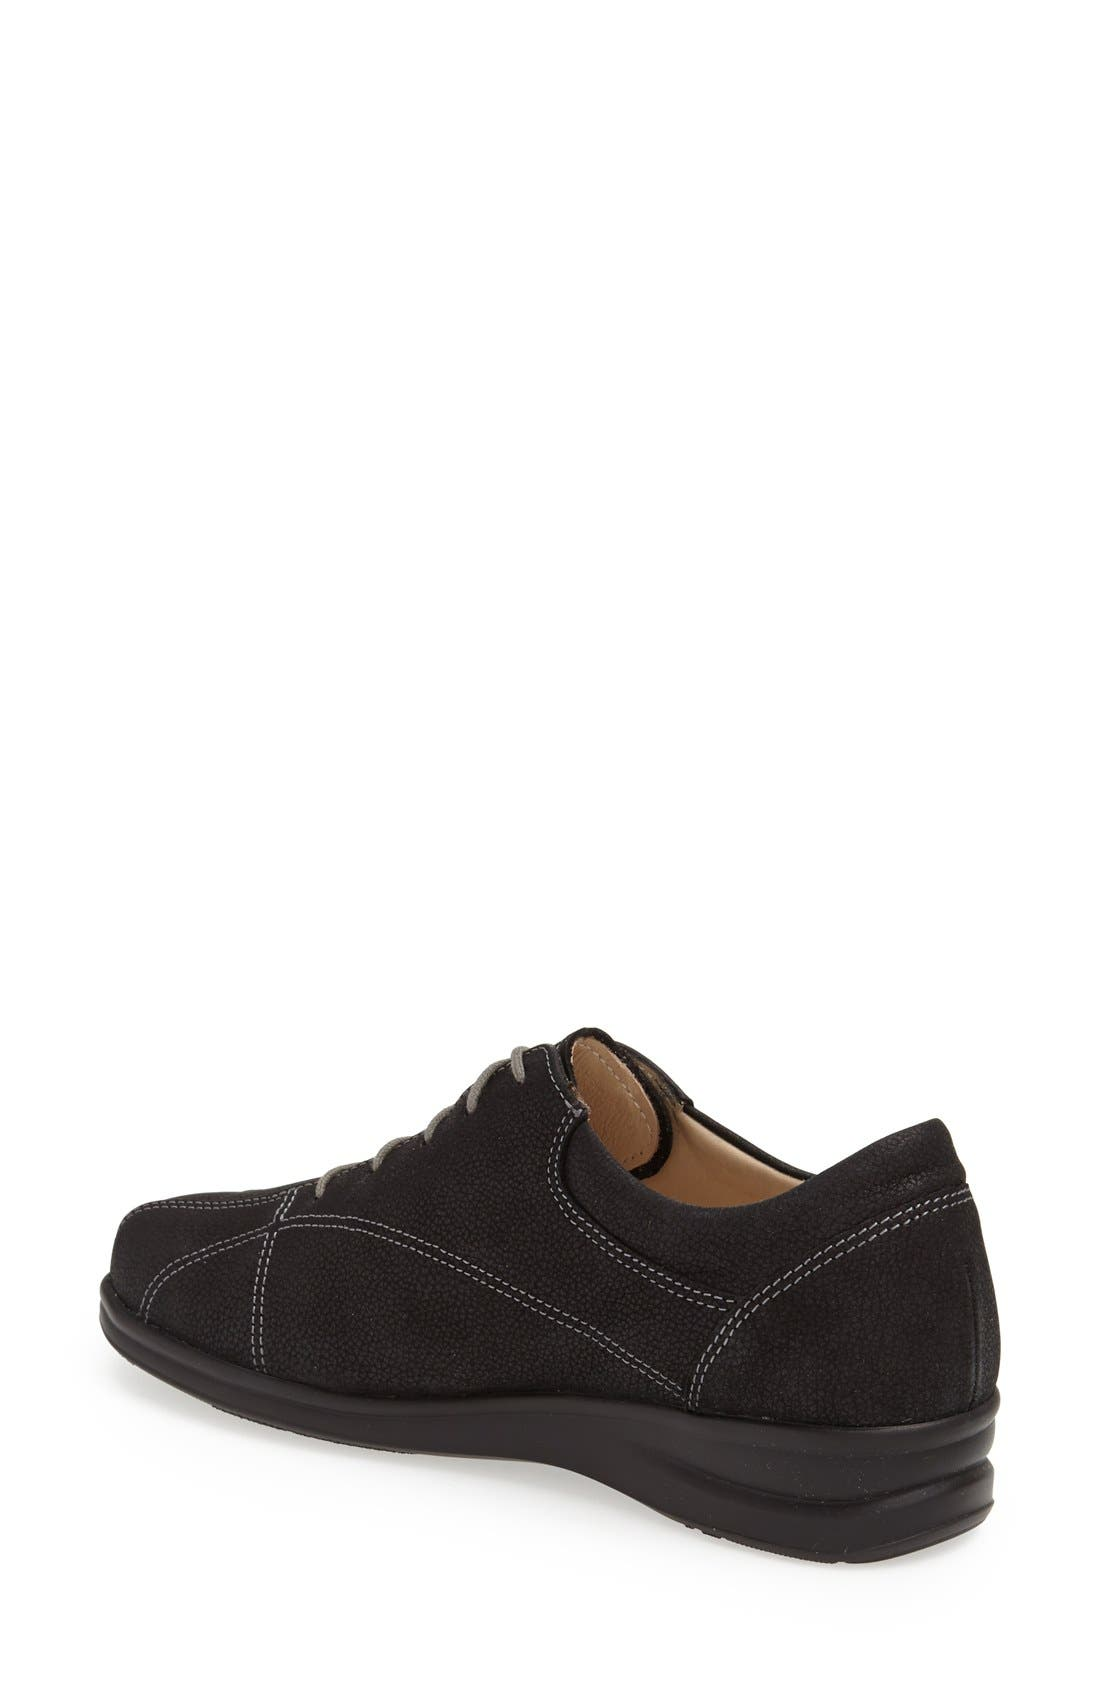 Alternate Image 2  - Finn Comfort 'Ariano' Leather Sneaker (Women)